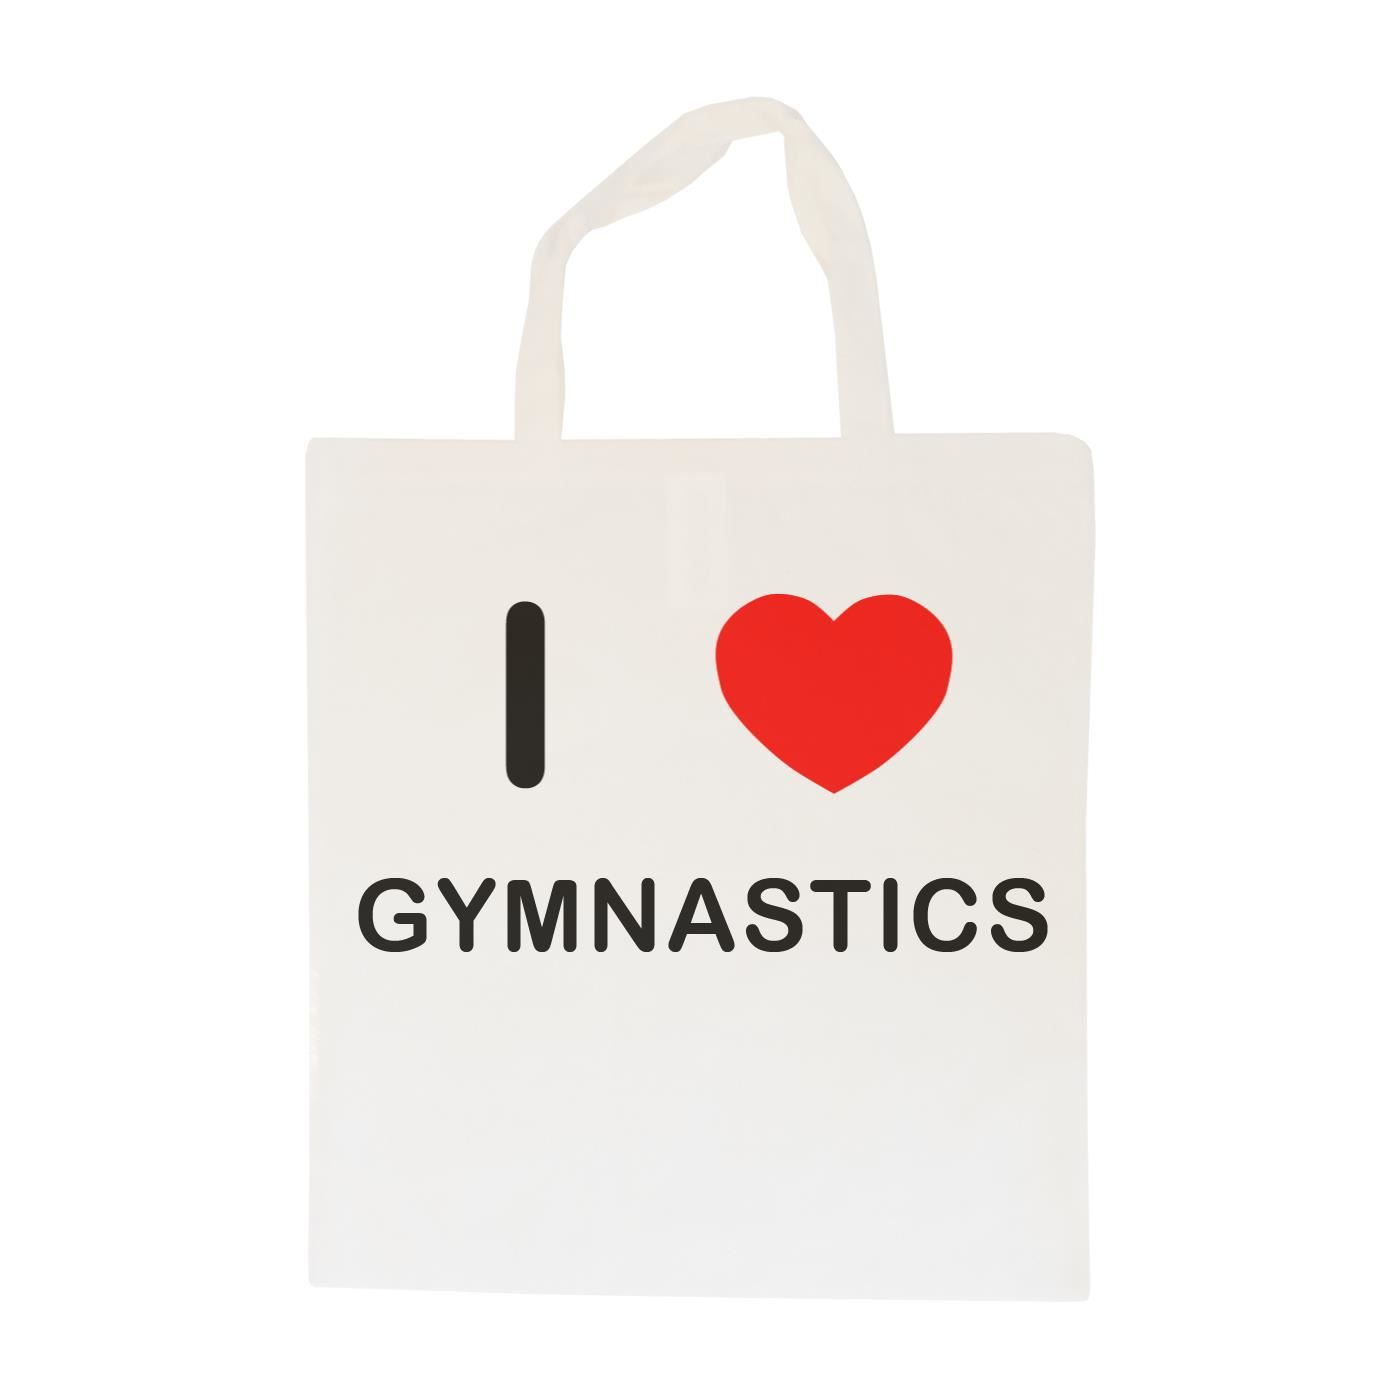 I Love Gymnastics - Cotton Bag | Size choice Tote, Shopper or Sling